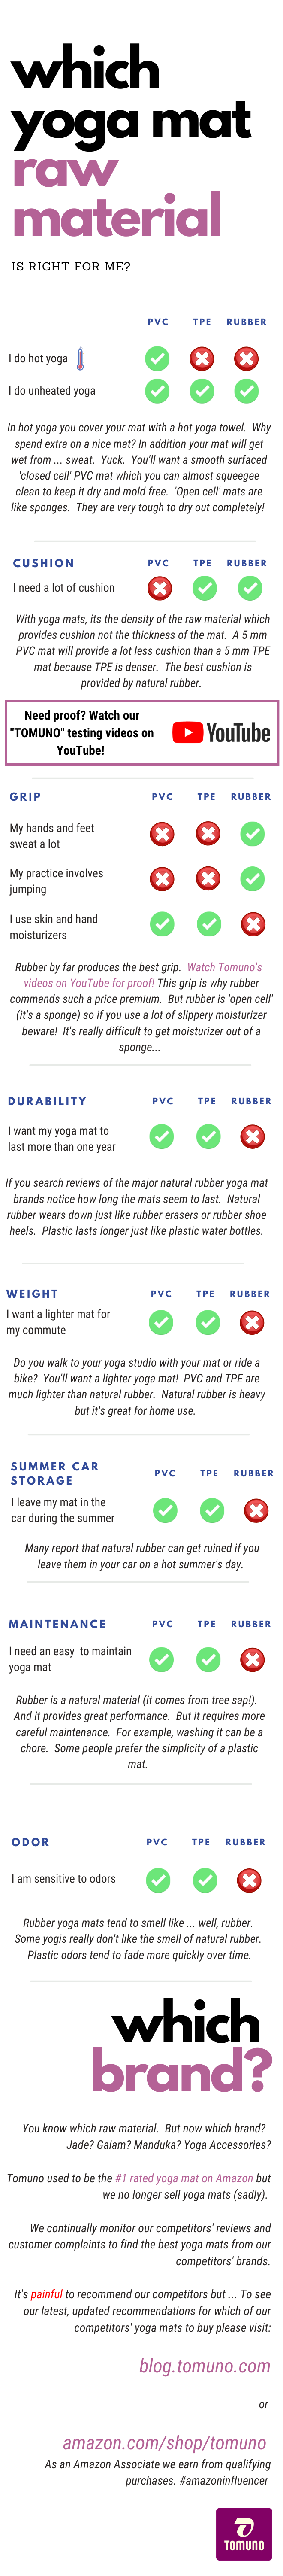 How to Choose the Best Yoga Mat for Your Specific Practice Infographic